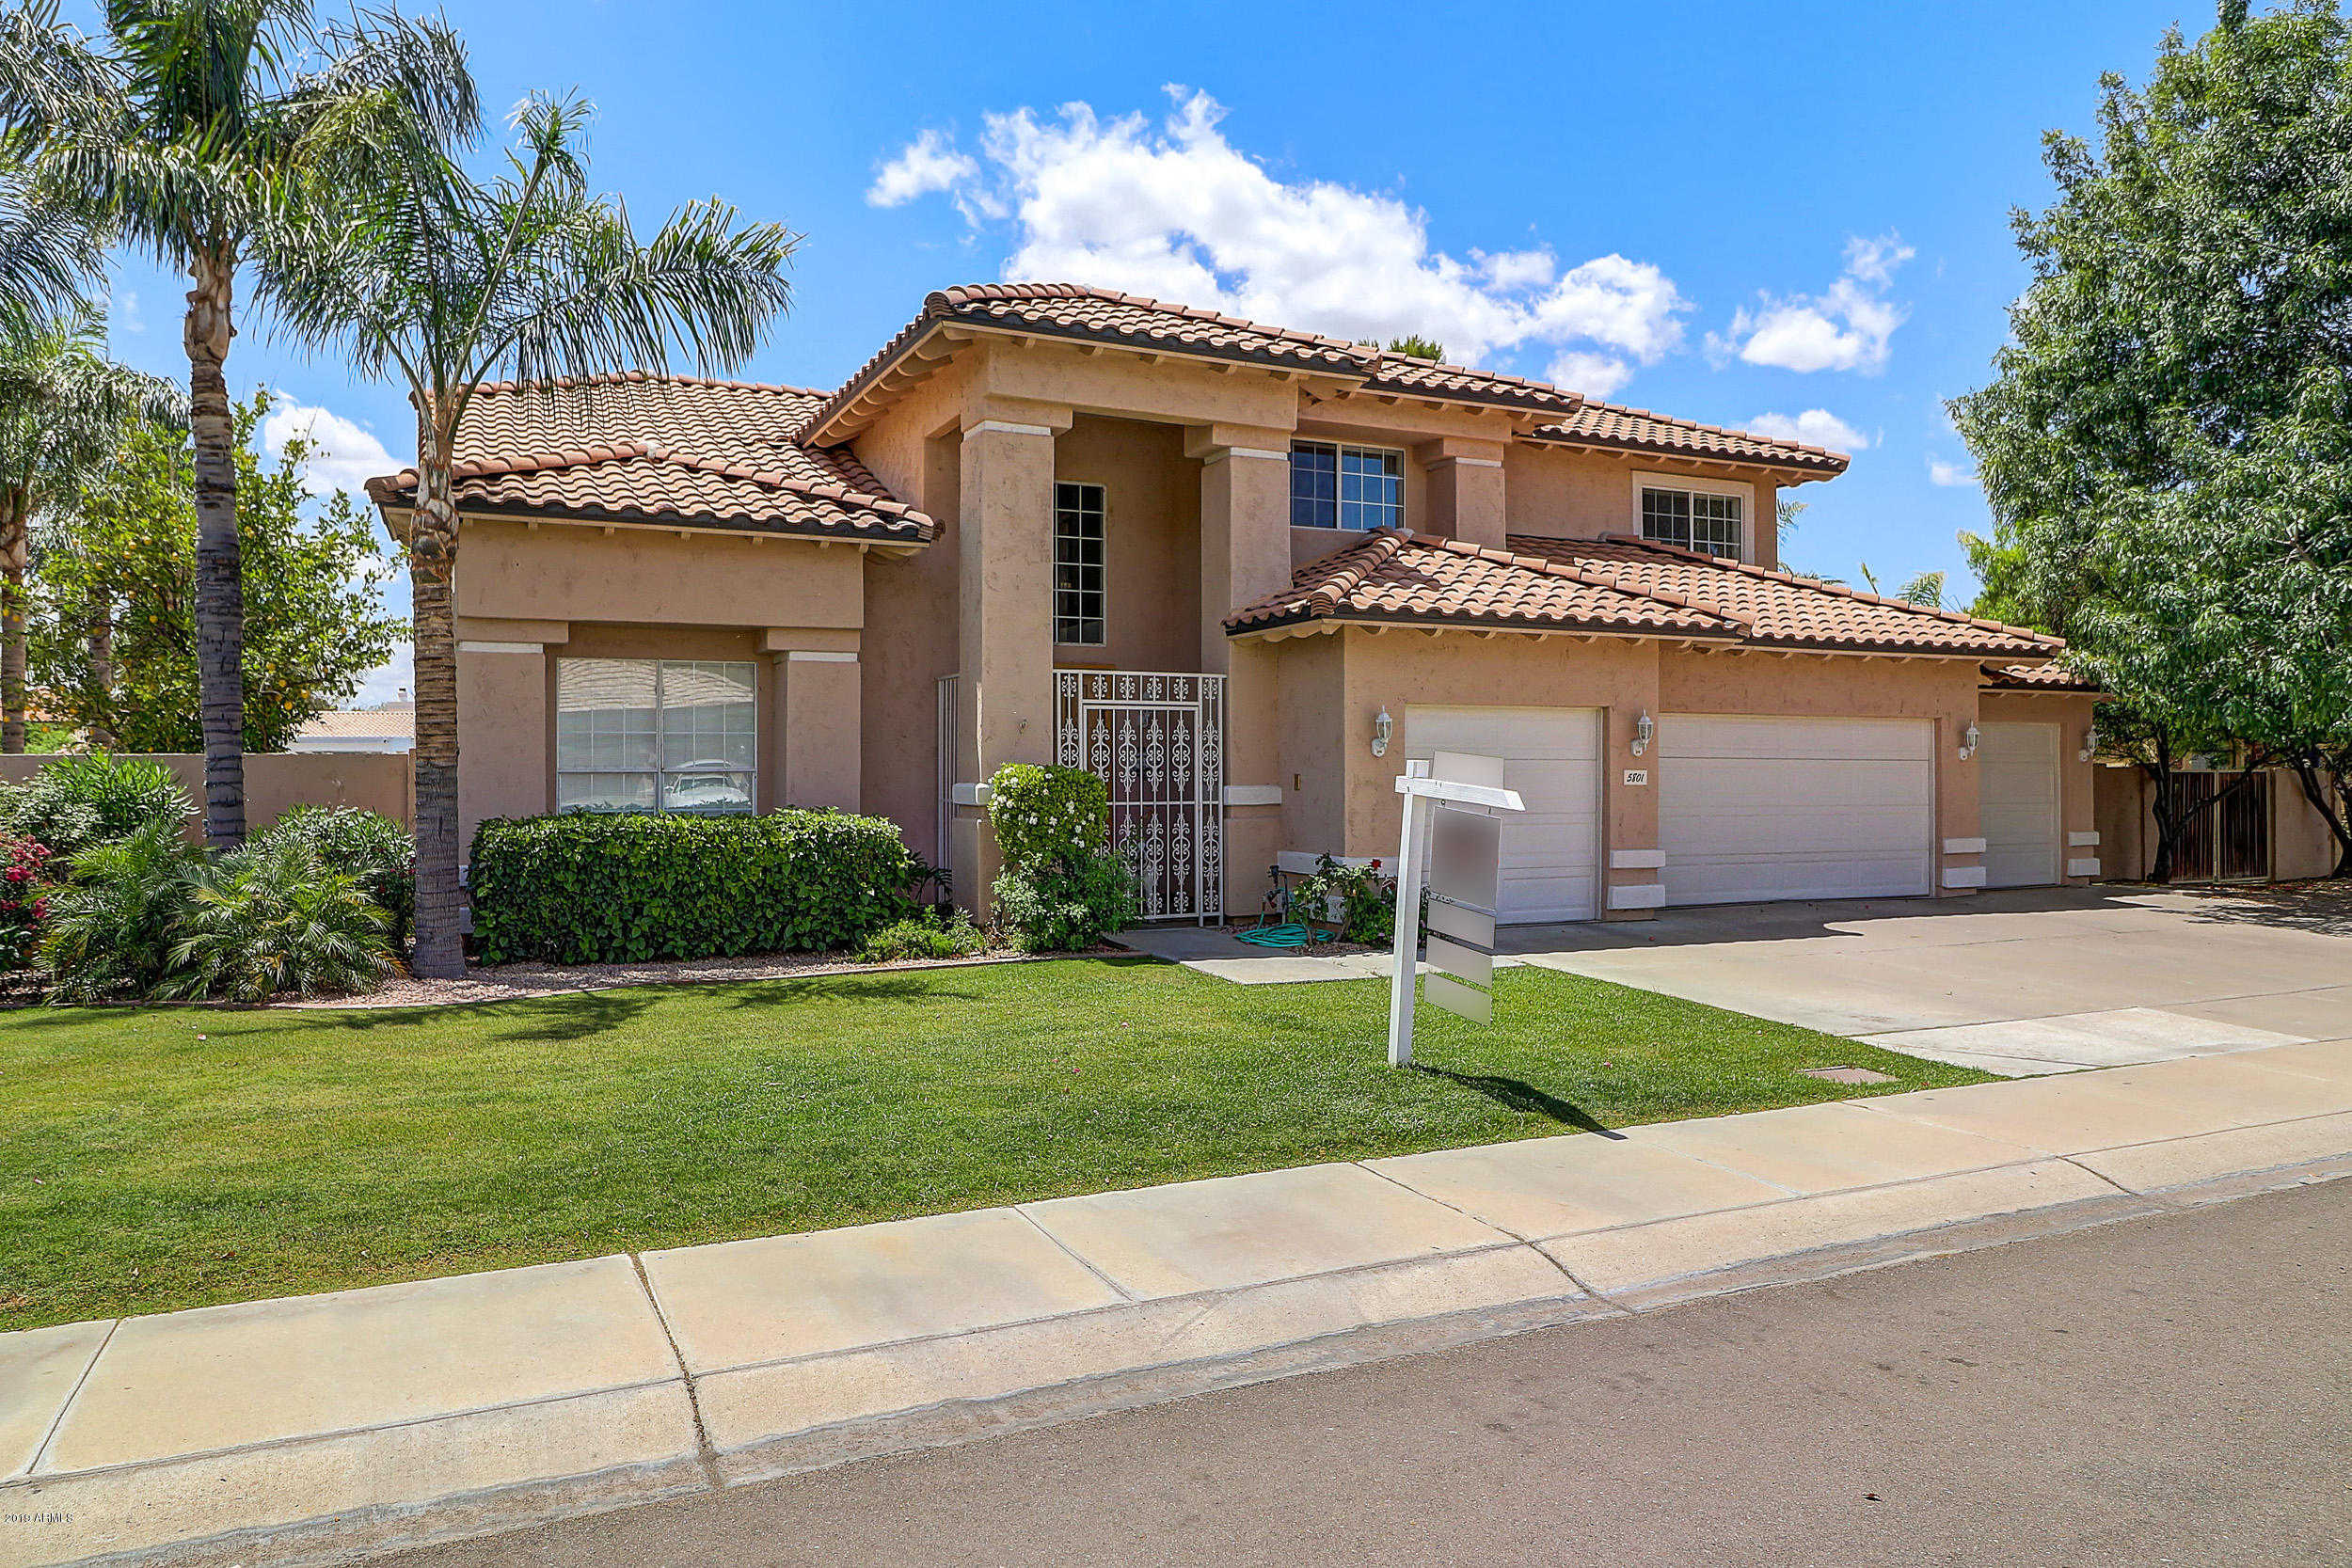 $740,000 - 4Br/3Ba - Home for Sale in Arrowhead Lakes 1 Replat Lt 1-204 A-h J-n P-r, Glendale